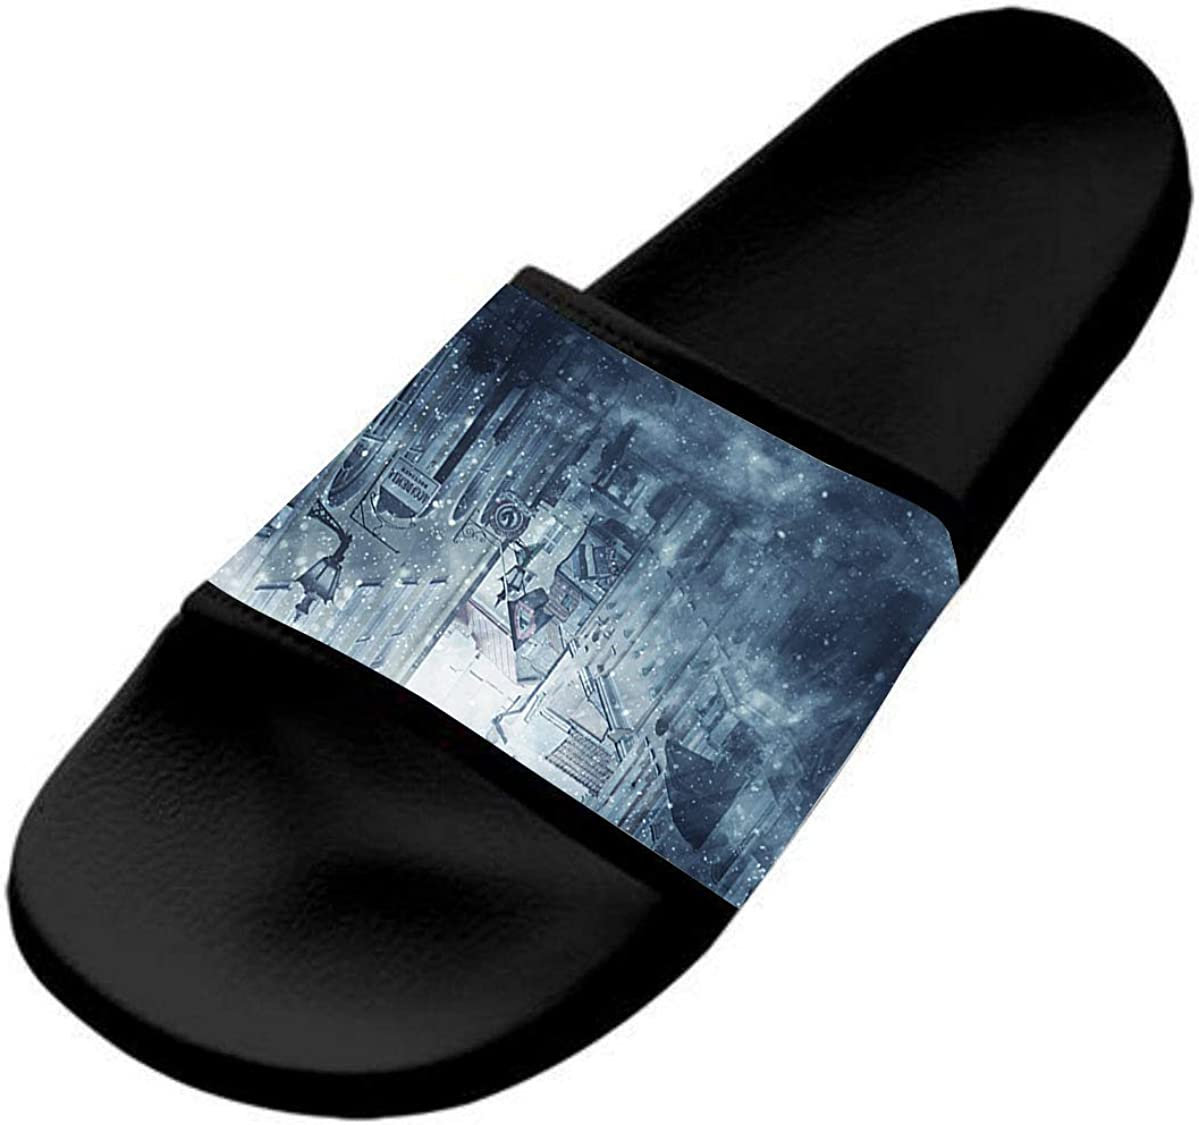 Pedestrians in The Snow Casual and Stylish Sports Slippers for Kids are Flat and Comfortable